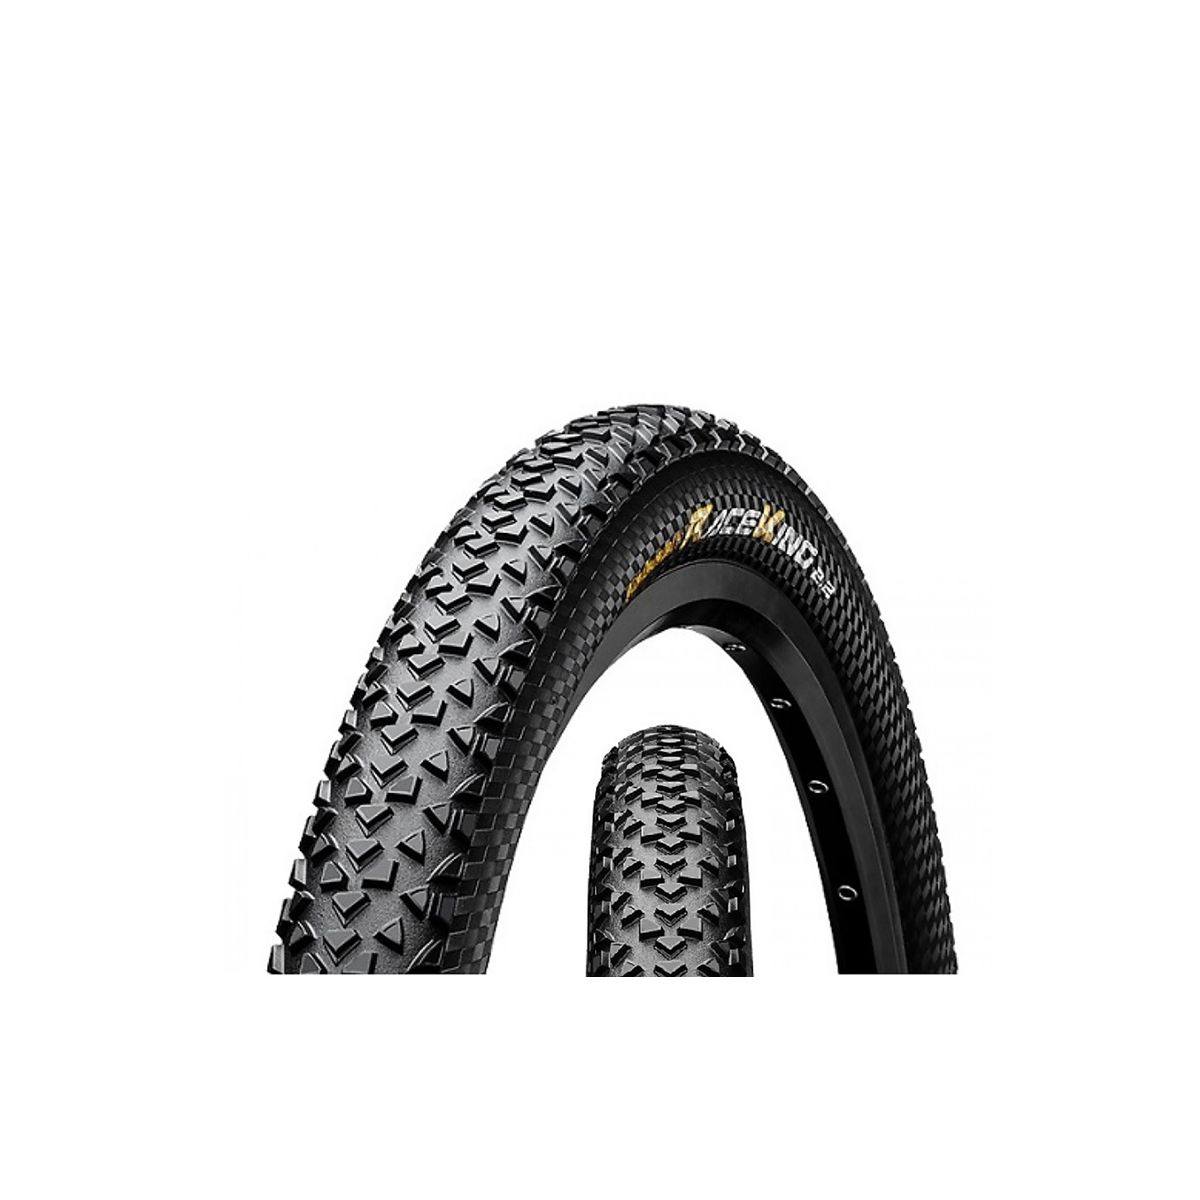 Race King ProTection Folding MTB Tyre